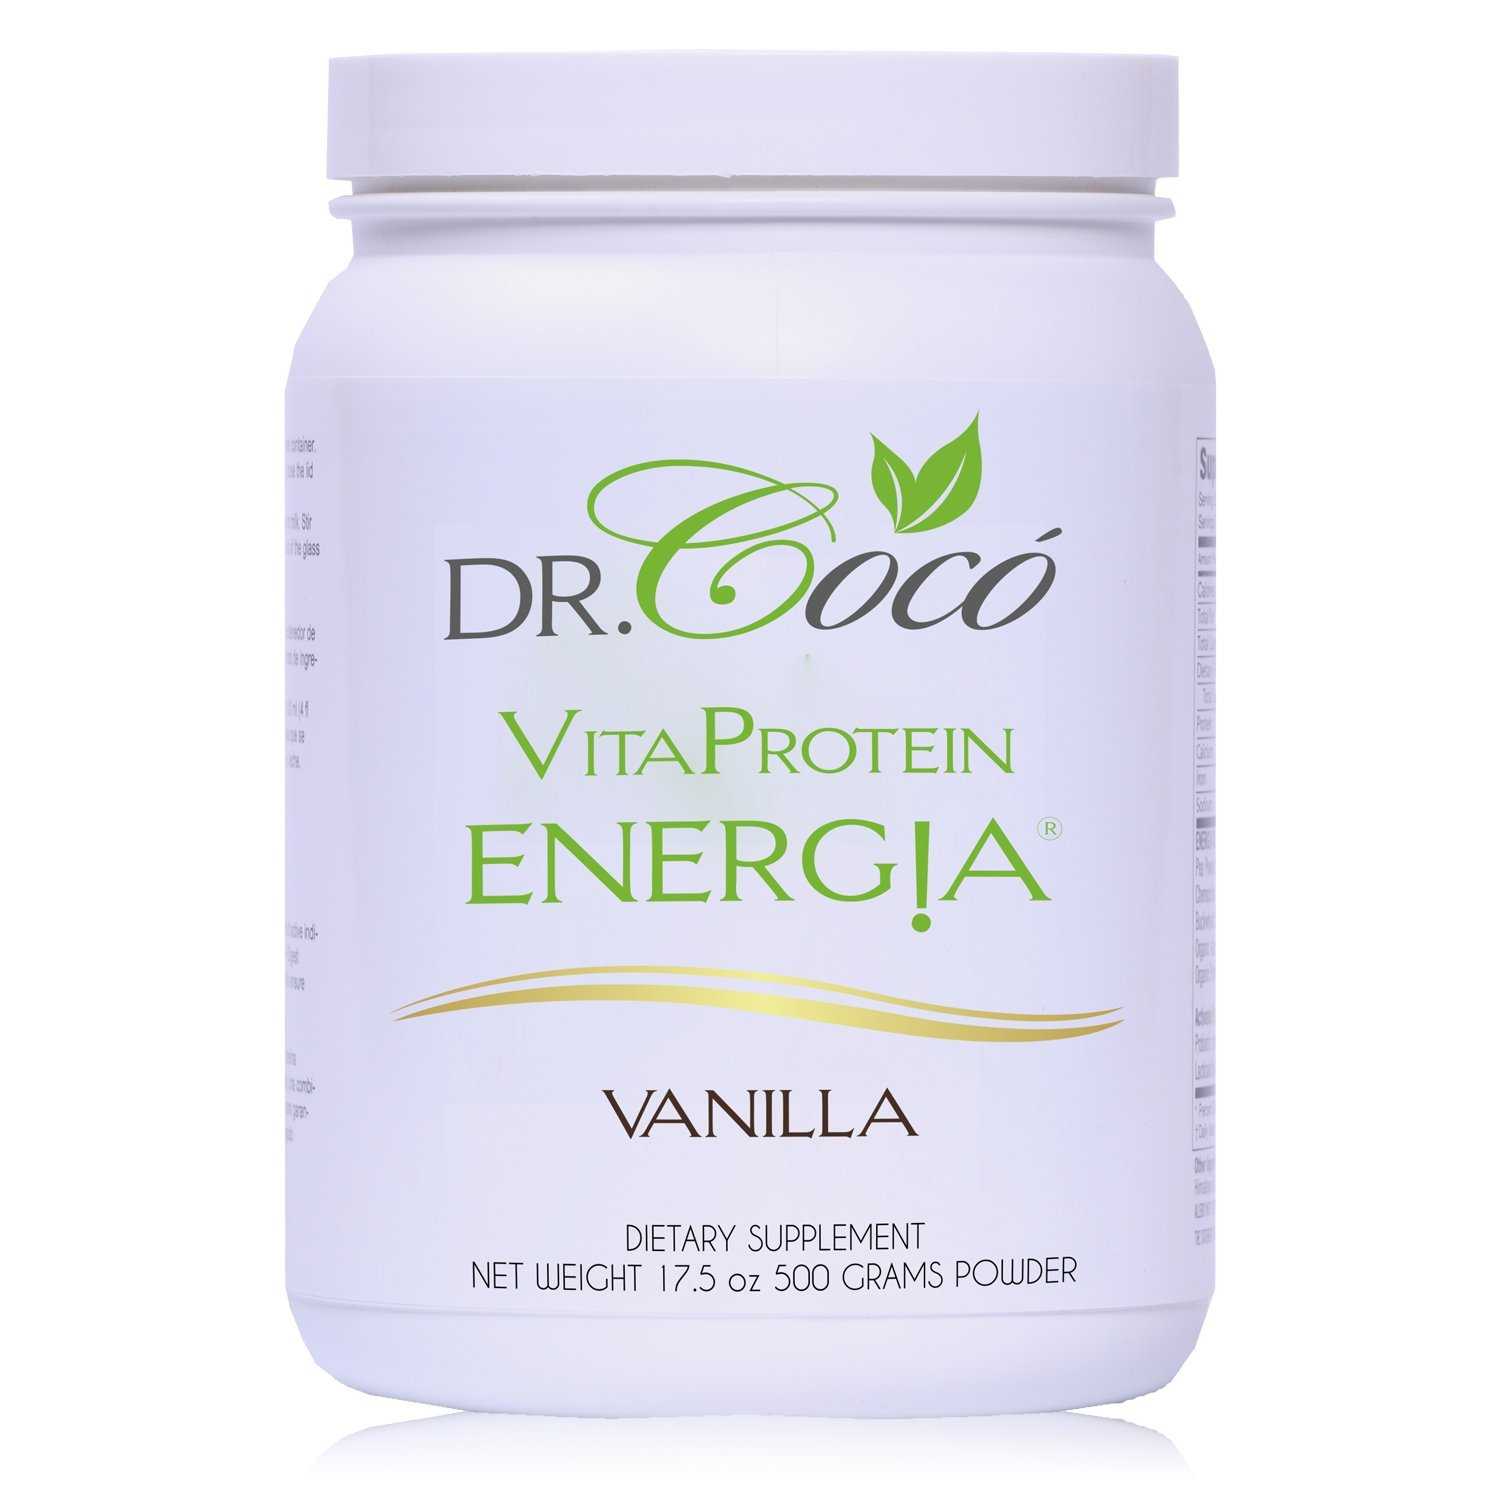 Doctor Formulated 20g Vegan Protein So Delicious You Won't Believe Is Good For You IDEAL FOR GI SENSITIVITIES with Probiotics & Enzymes VANILLA Flavor by Dr. Coco